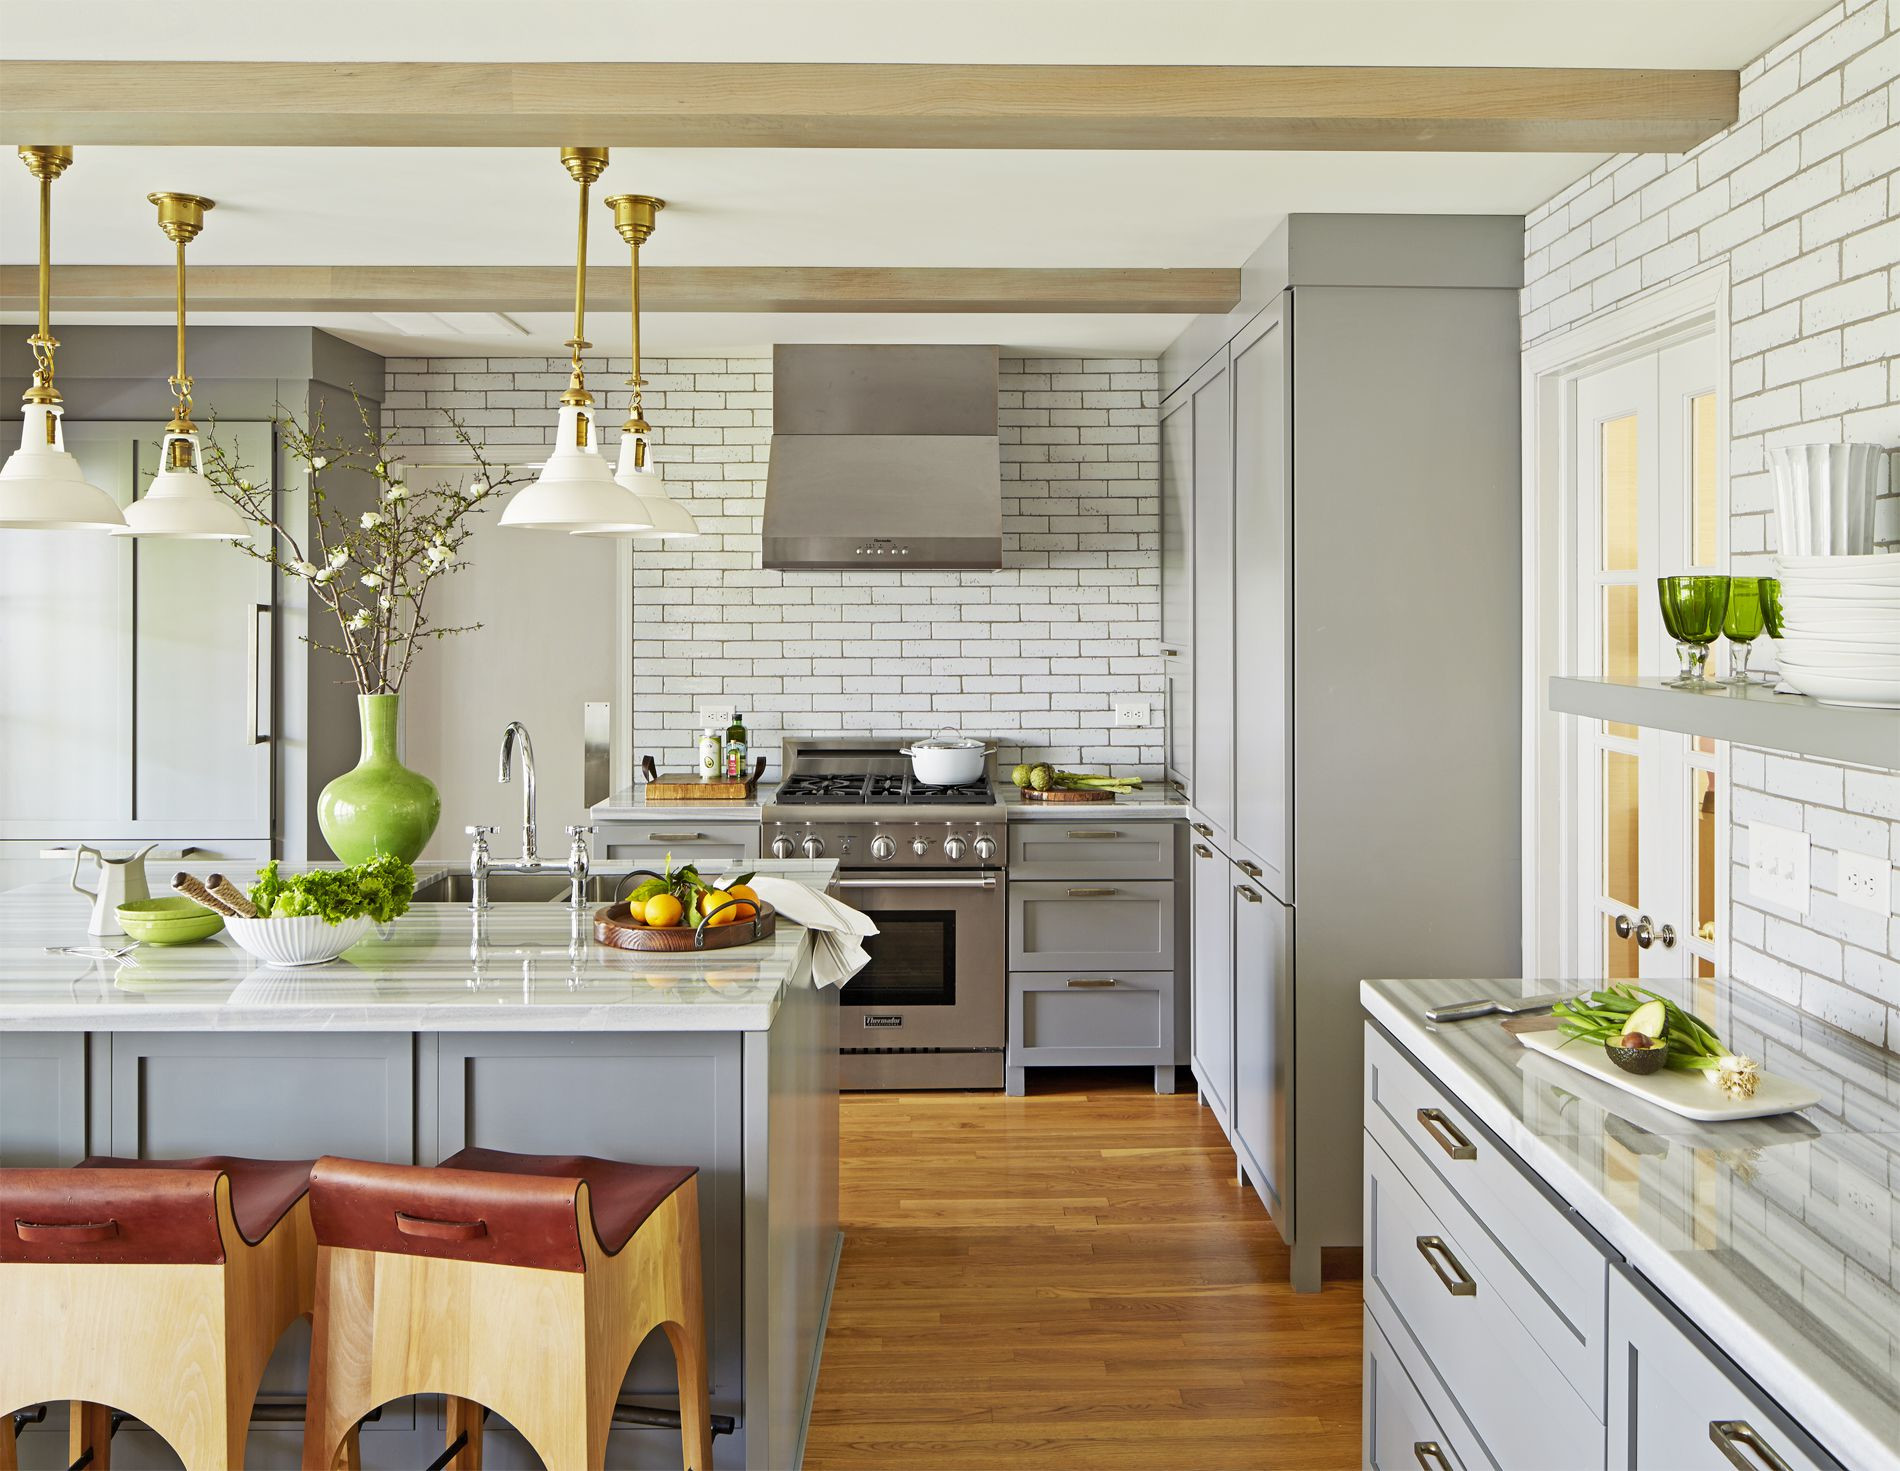 joanna gaines hardwood floor colors of 8 gorgeous kitchen trends that will be huge in 2018 regarding 1483474533 kitchen reinvention beyond greige 0117